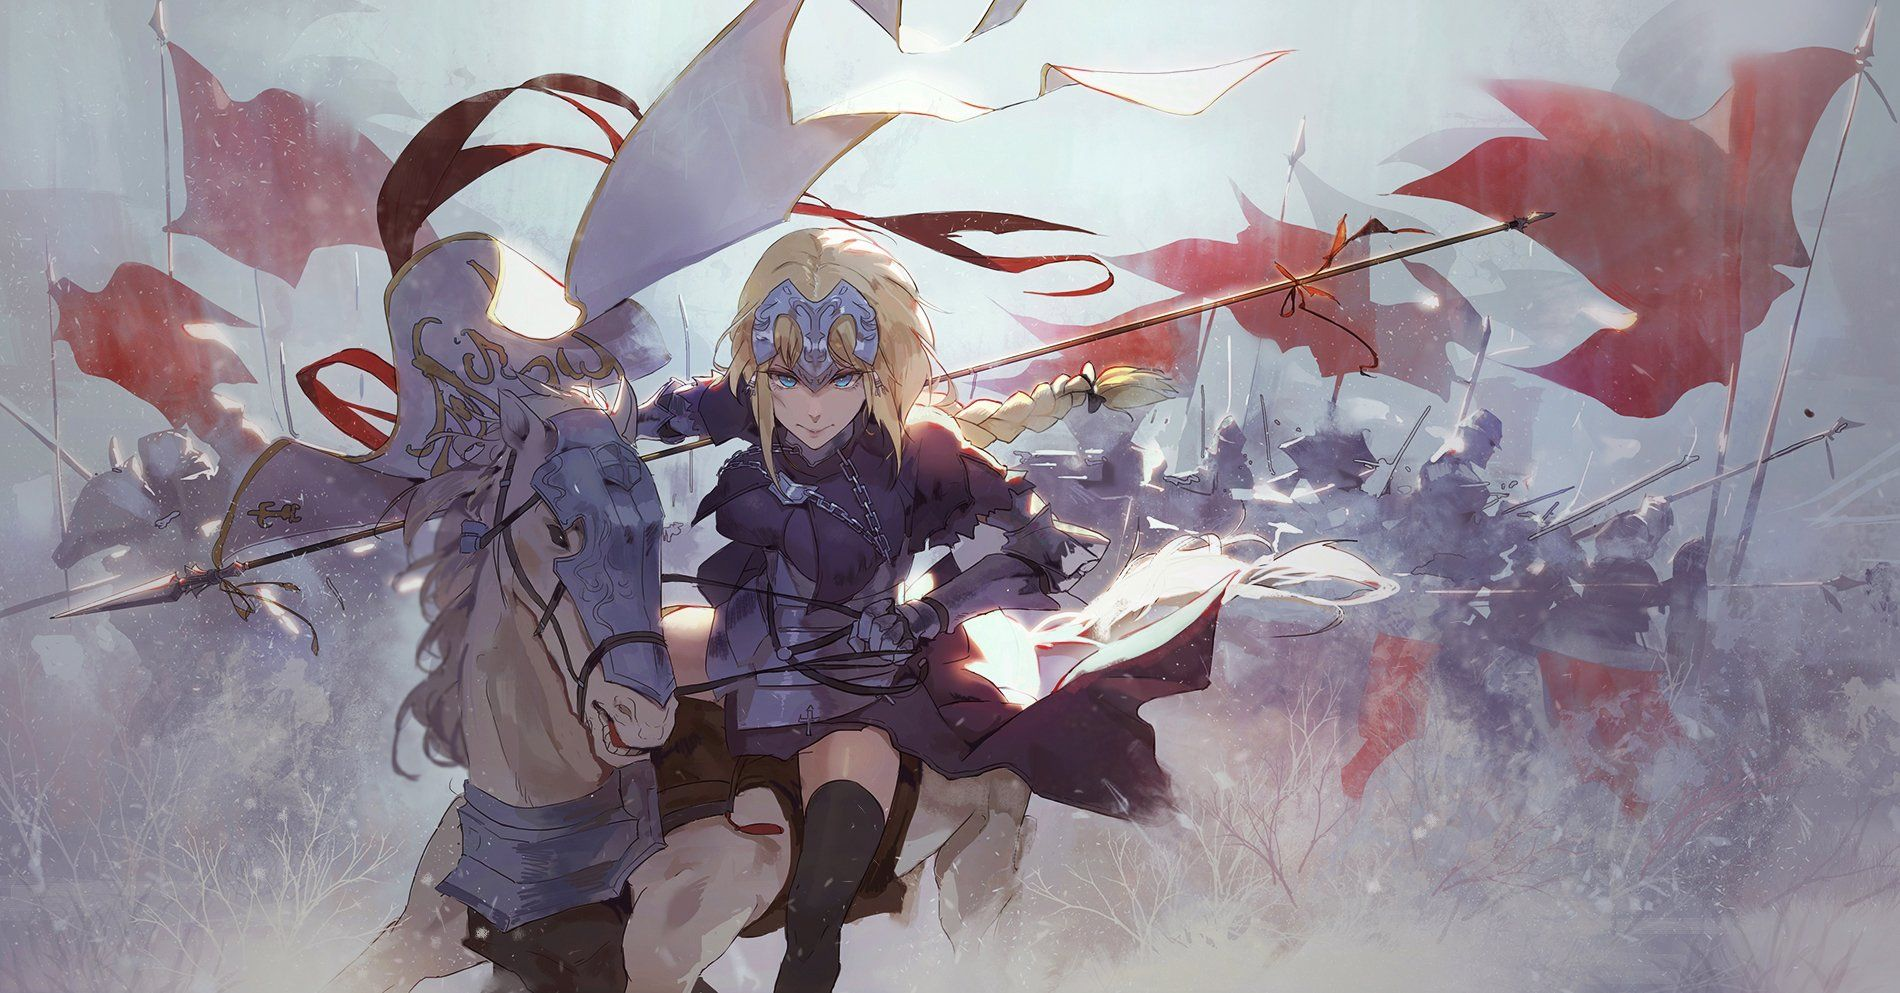 Fate Apocrypha Wallpapers   Top Fate Apocrypha Backgrounds 1900x993